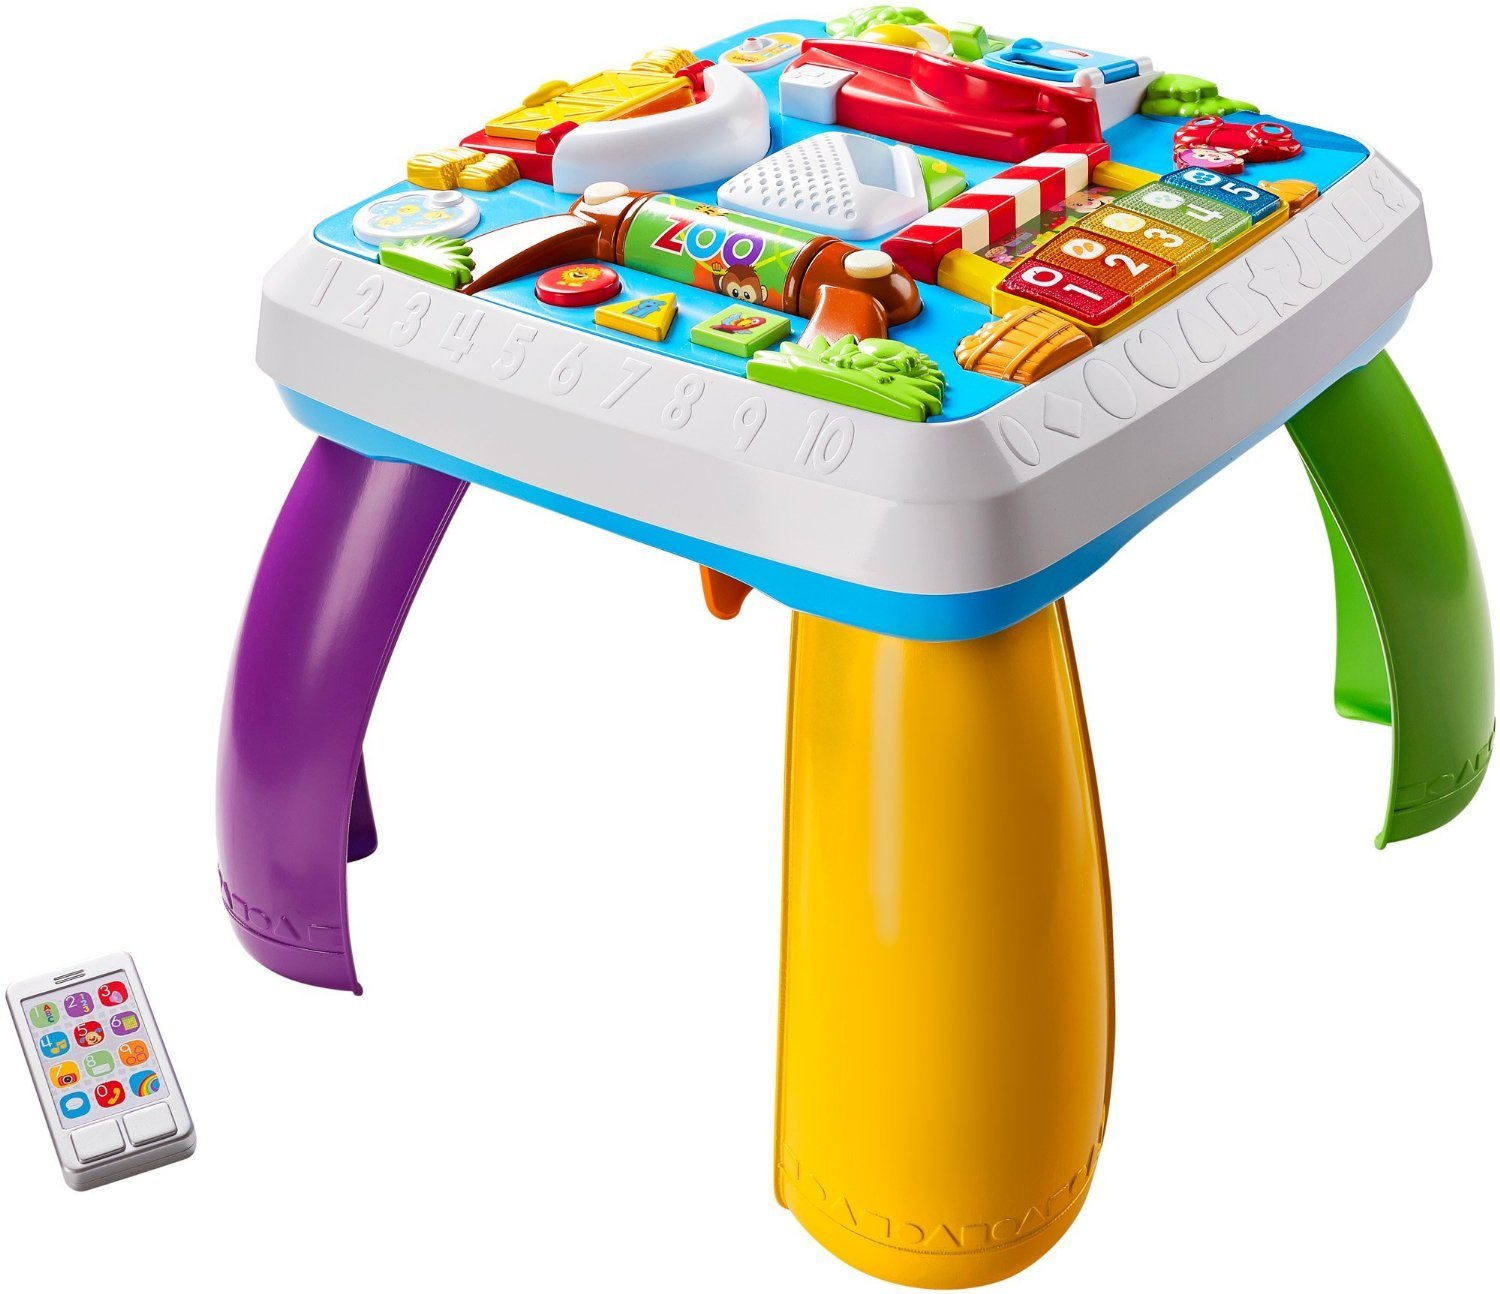 Laugh Learn Smart Stages Table Toy At Mighty Ape Nz Fisher Price Phone Image